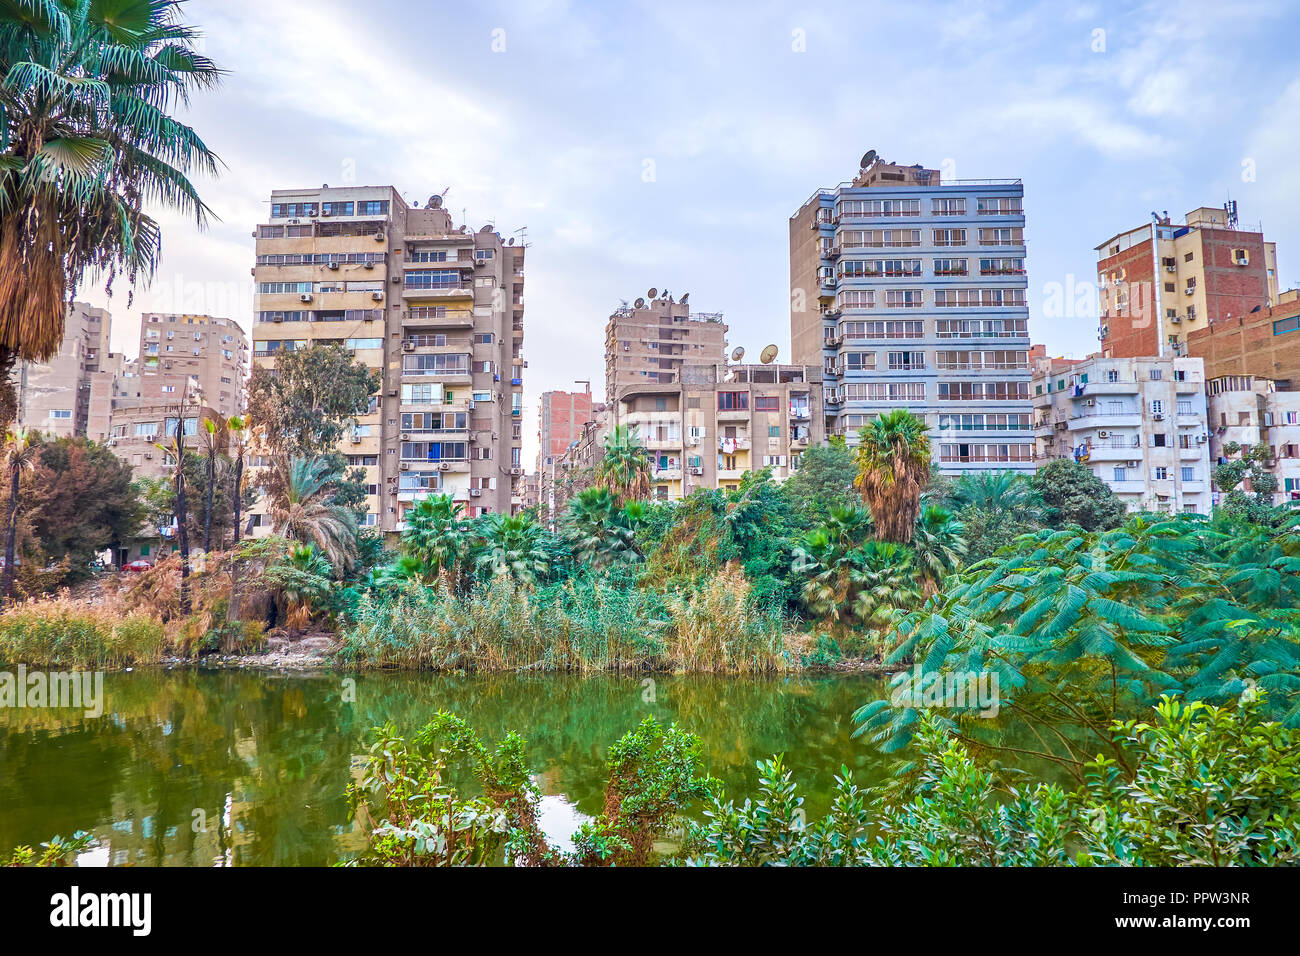 The old decrepit residential buildings in Roda (Rawdah) island with a view on the Nile branch, Cairo, Egypt - Stock Image